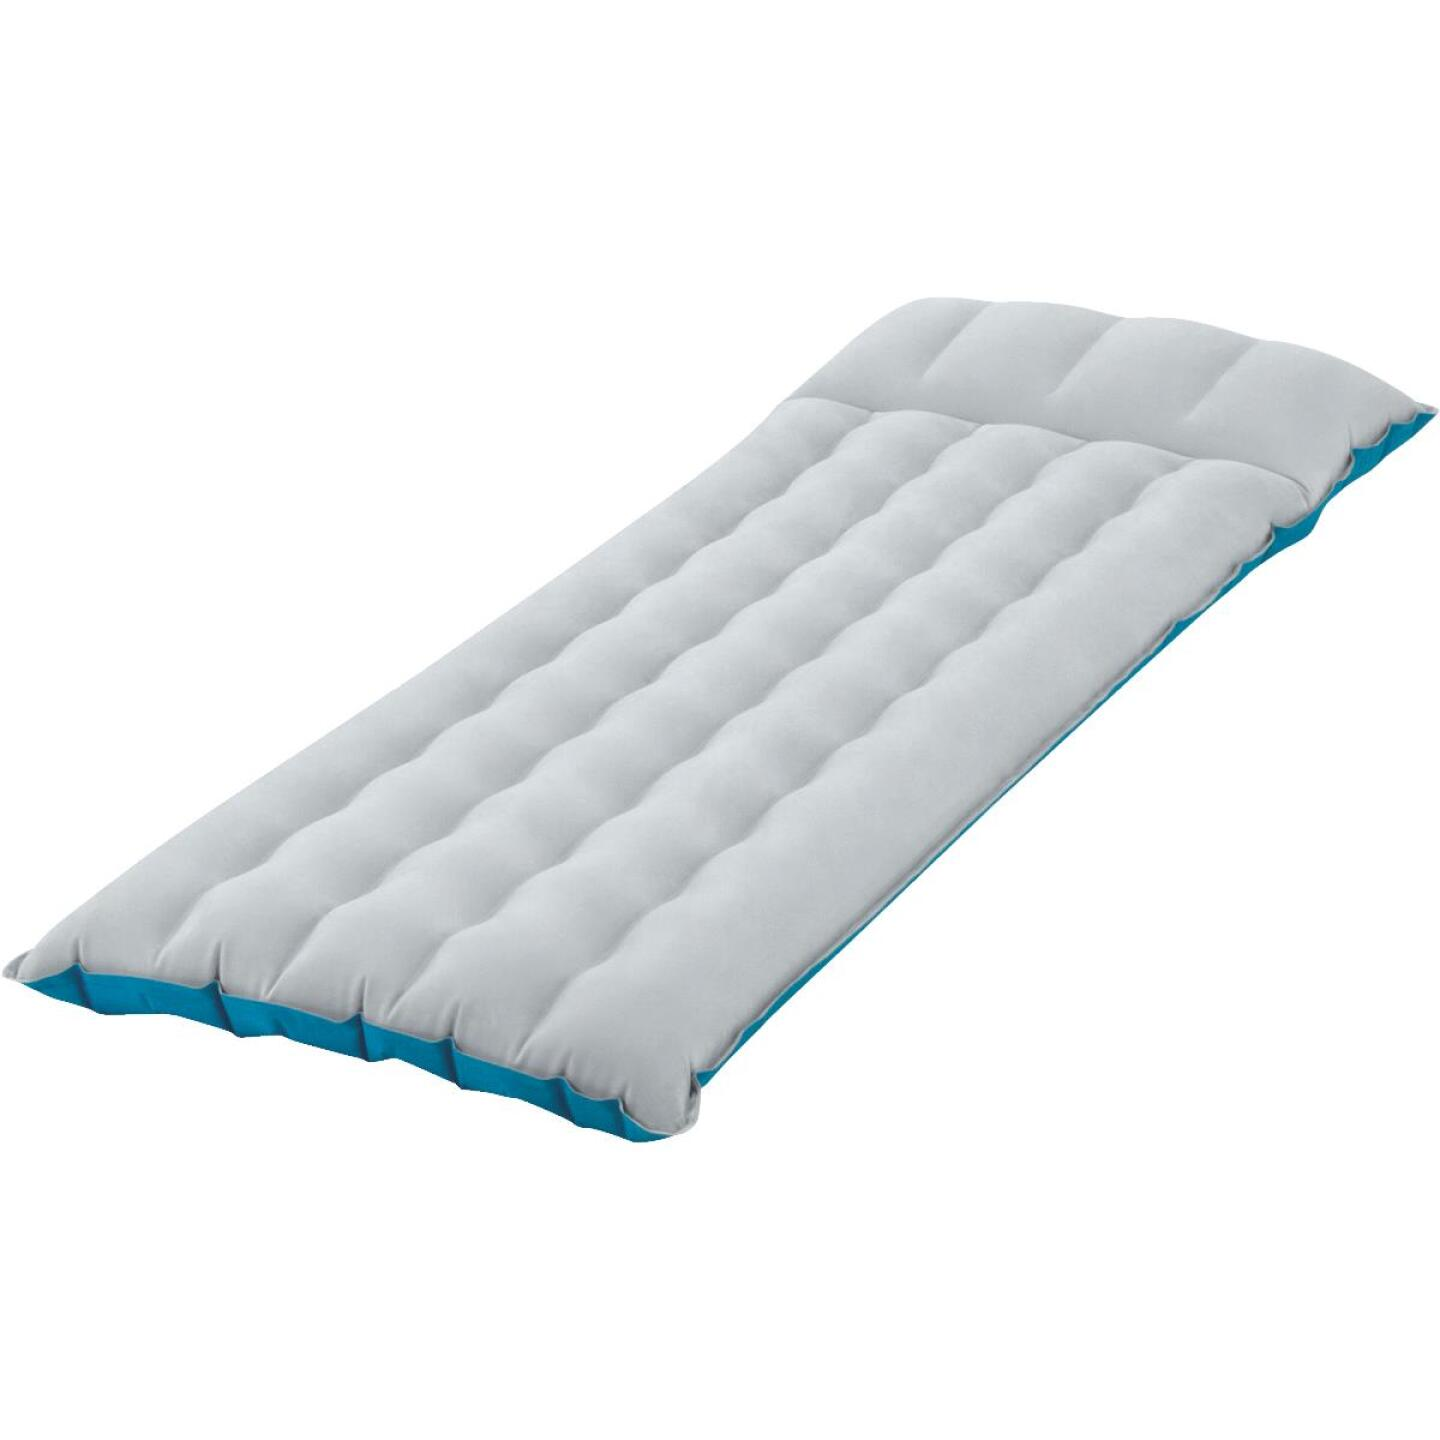 Intext Twin Air Mattress Bed Image 1